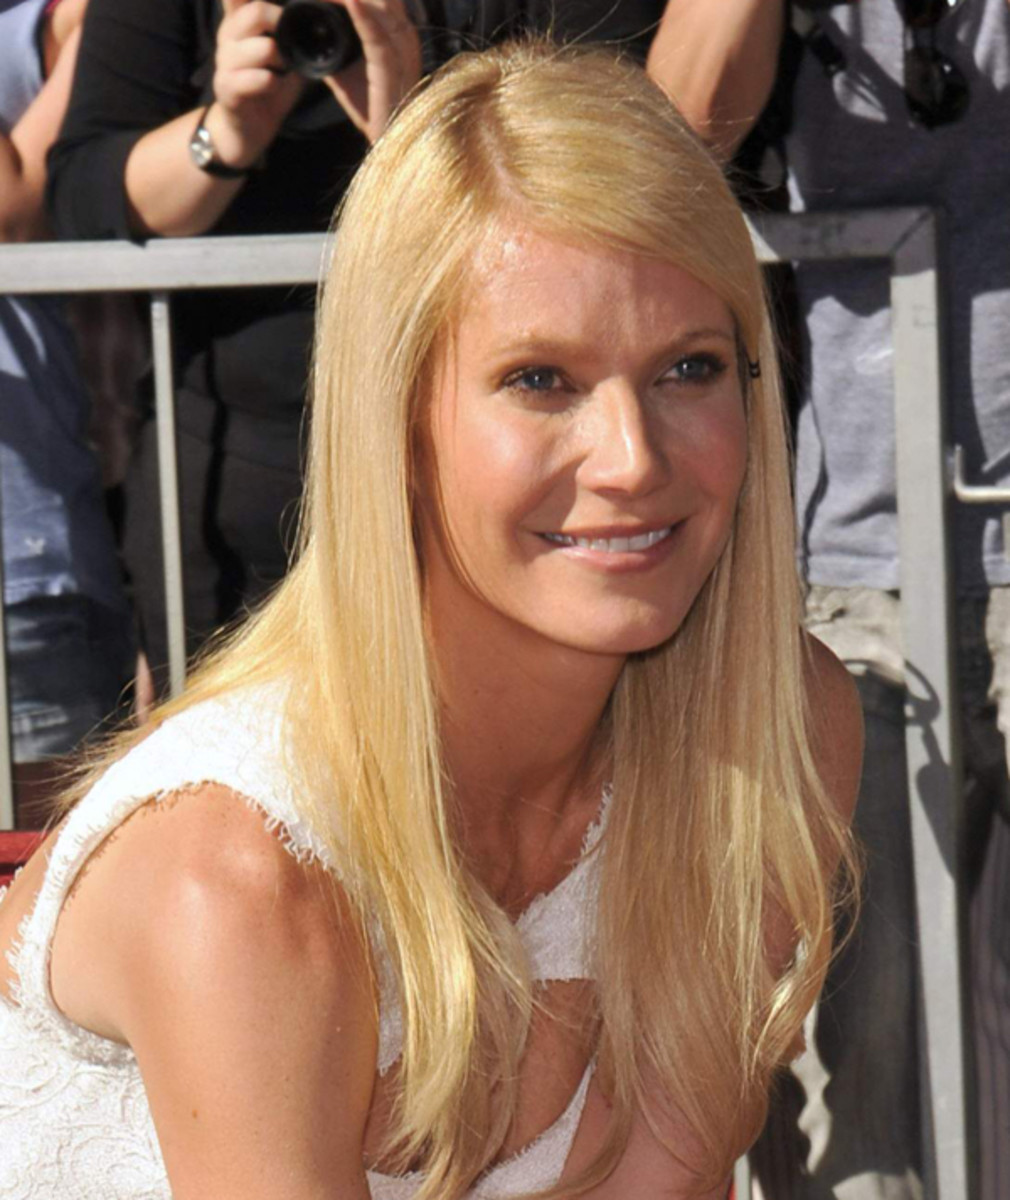 Gwyneth-Paltrow-Hollywood-Walk-of-Fame-2010-frozen-face